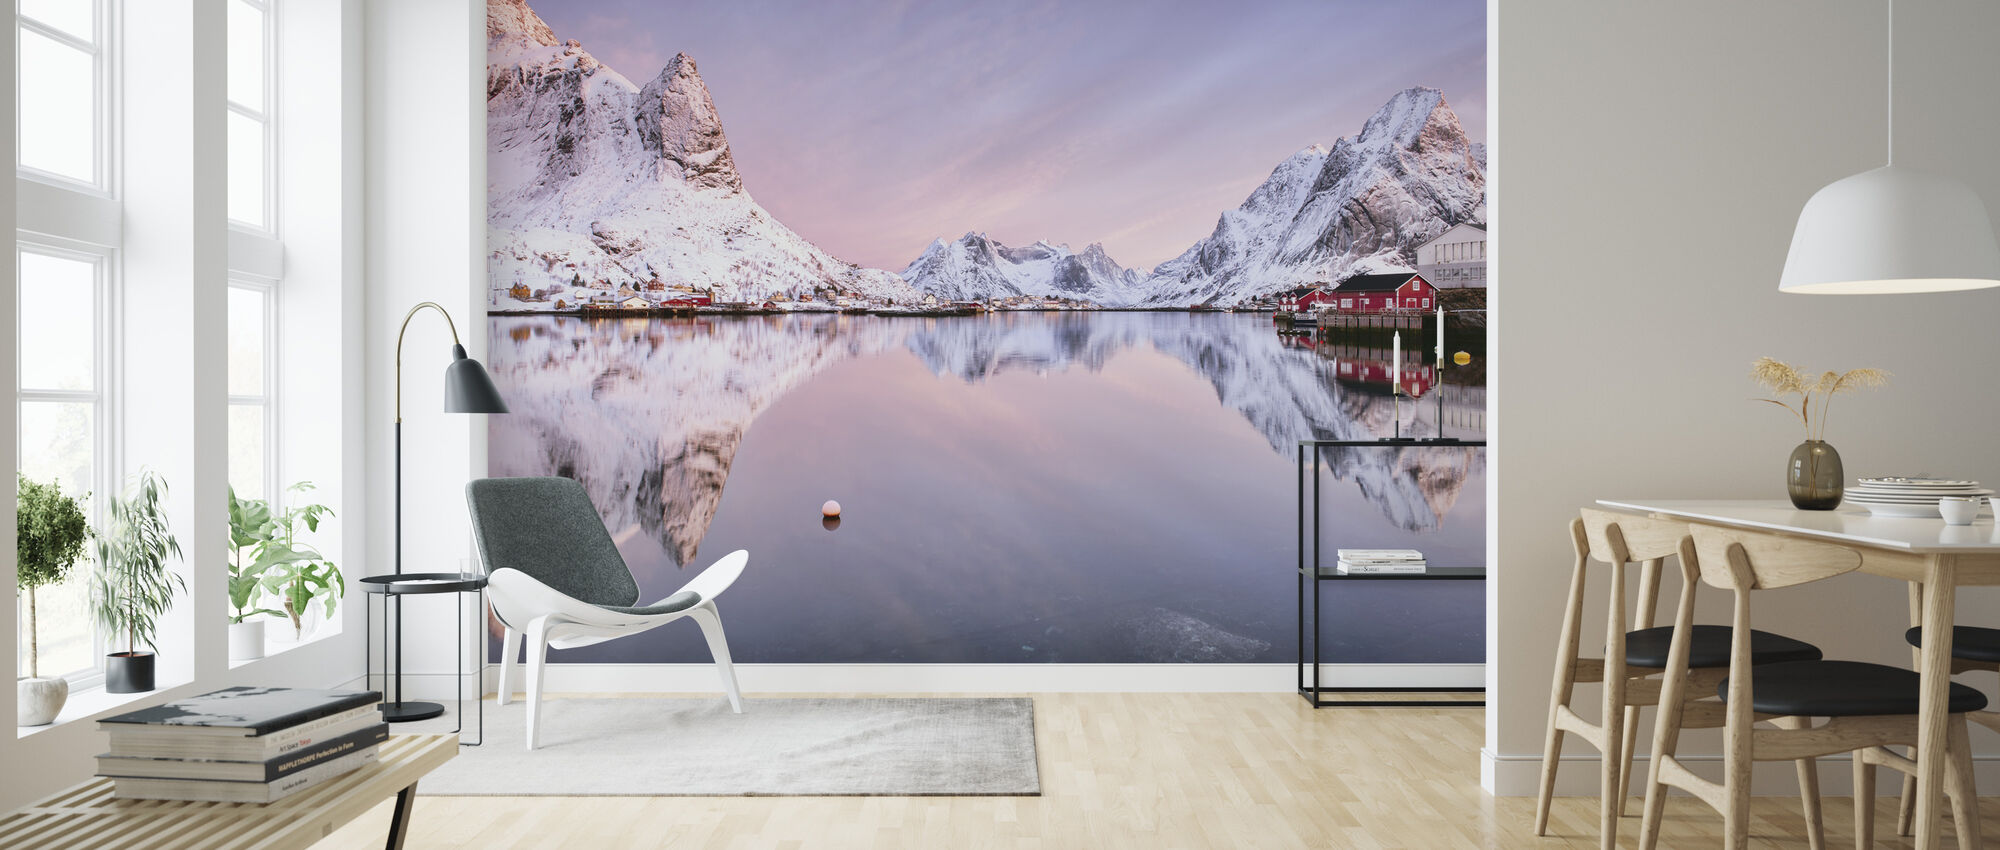 Sunrise at the Fjord - Wallpaper - Living Room